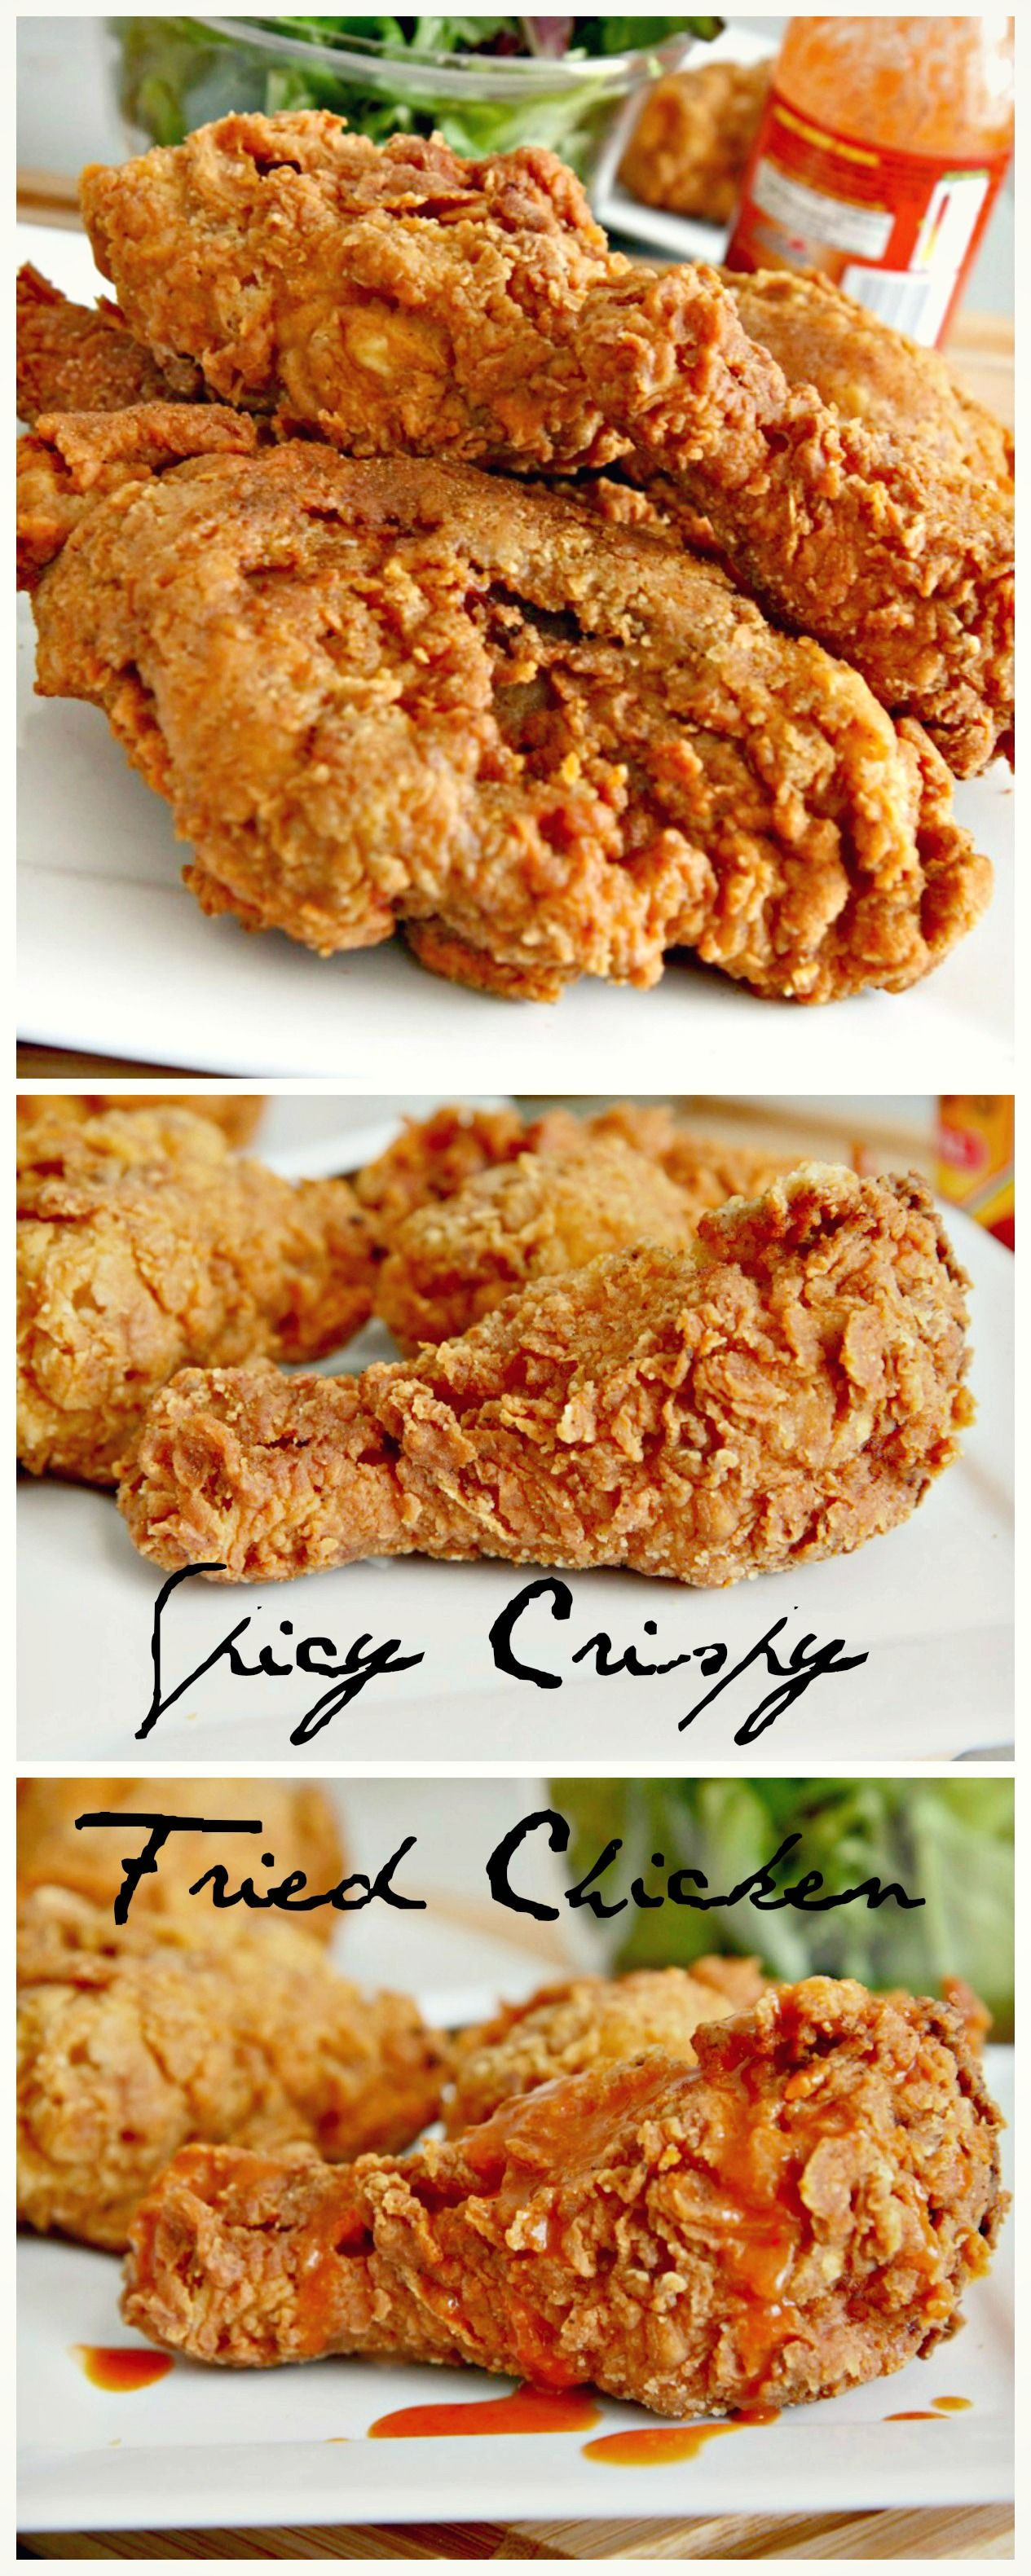 Crispy Spicy Fried Chicken Recipe That S Full Of Cajun Flavor And Seasoned To Perfection A Buttermilk Brine E Chicken Recipes Spicy Fried Chicken Food Recipes